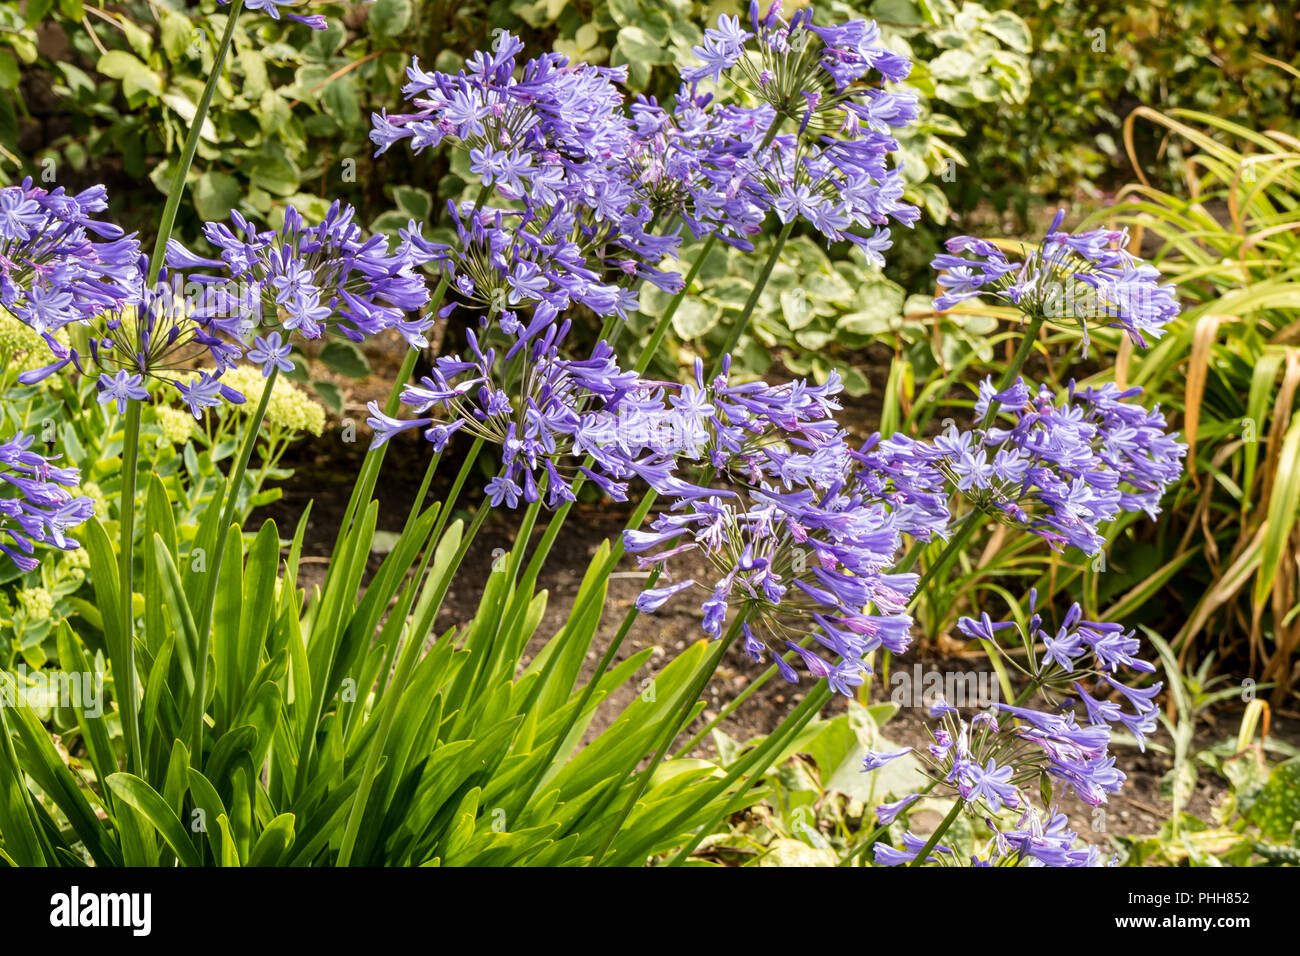 Blue Agapanthus (African lily) plants in a herbaceous border in a garden. - Stock Image